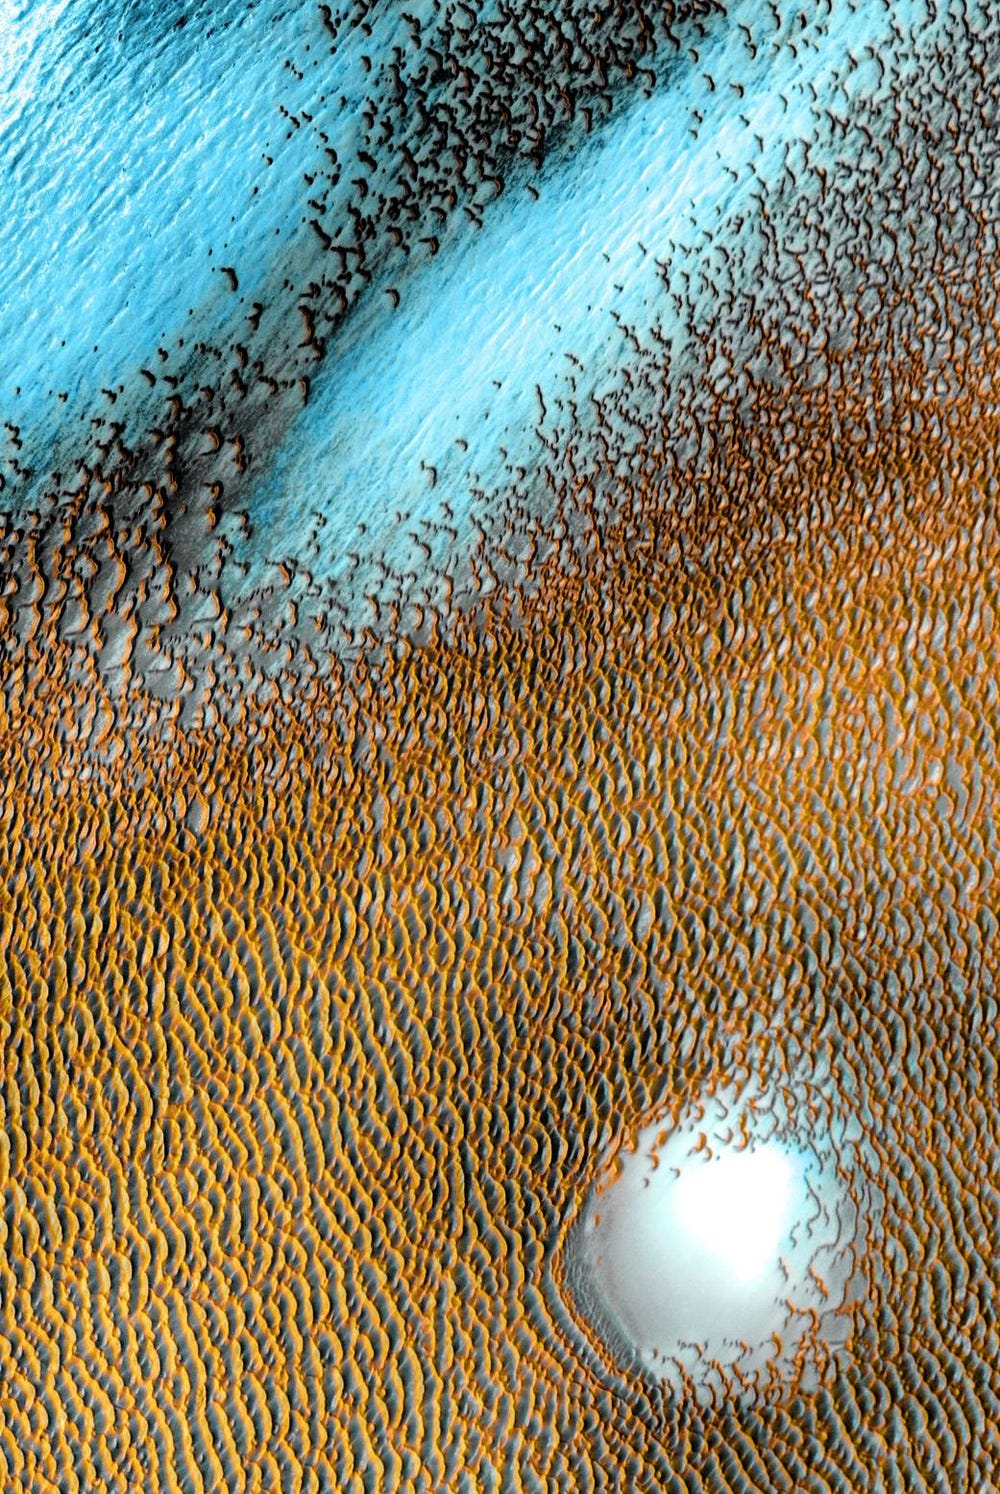 Wind-sculpted sea of blue dunes on Mars captured by the Odyssey orbiter.